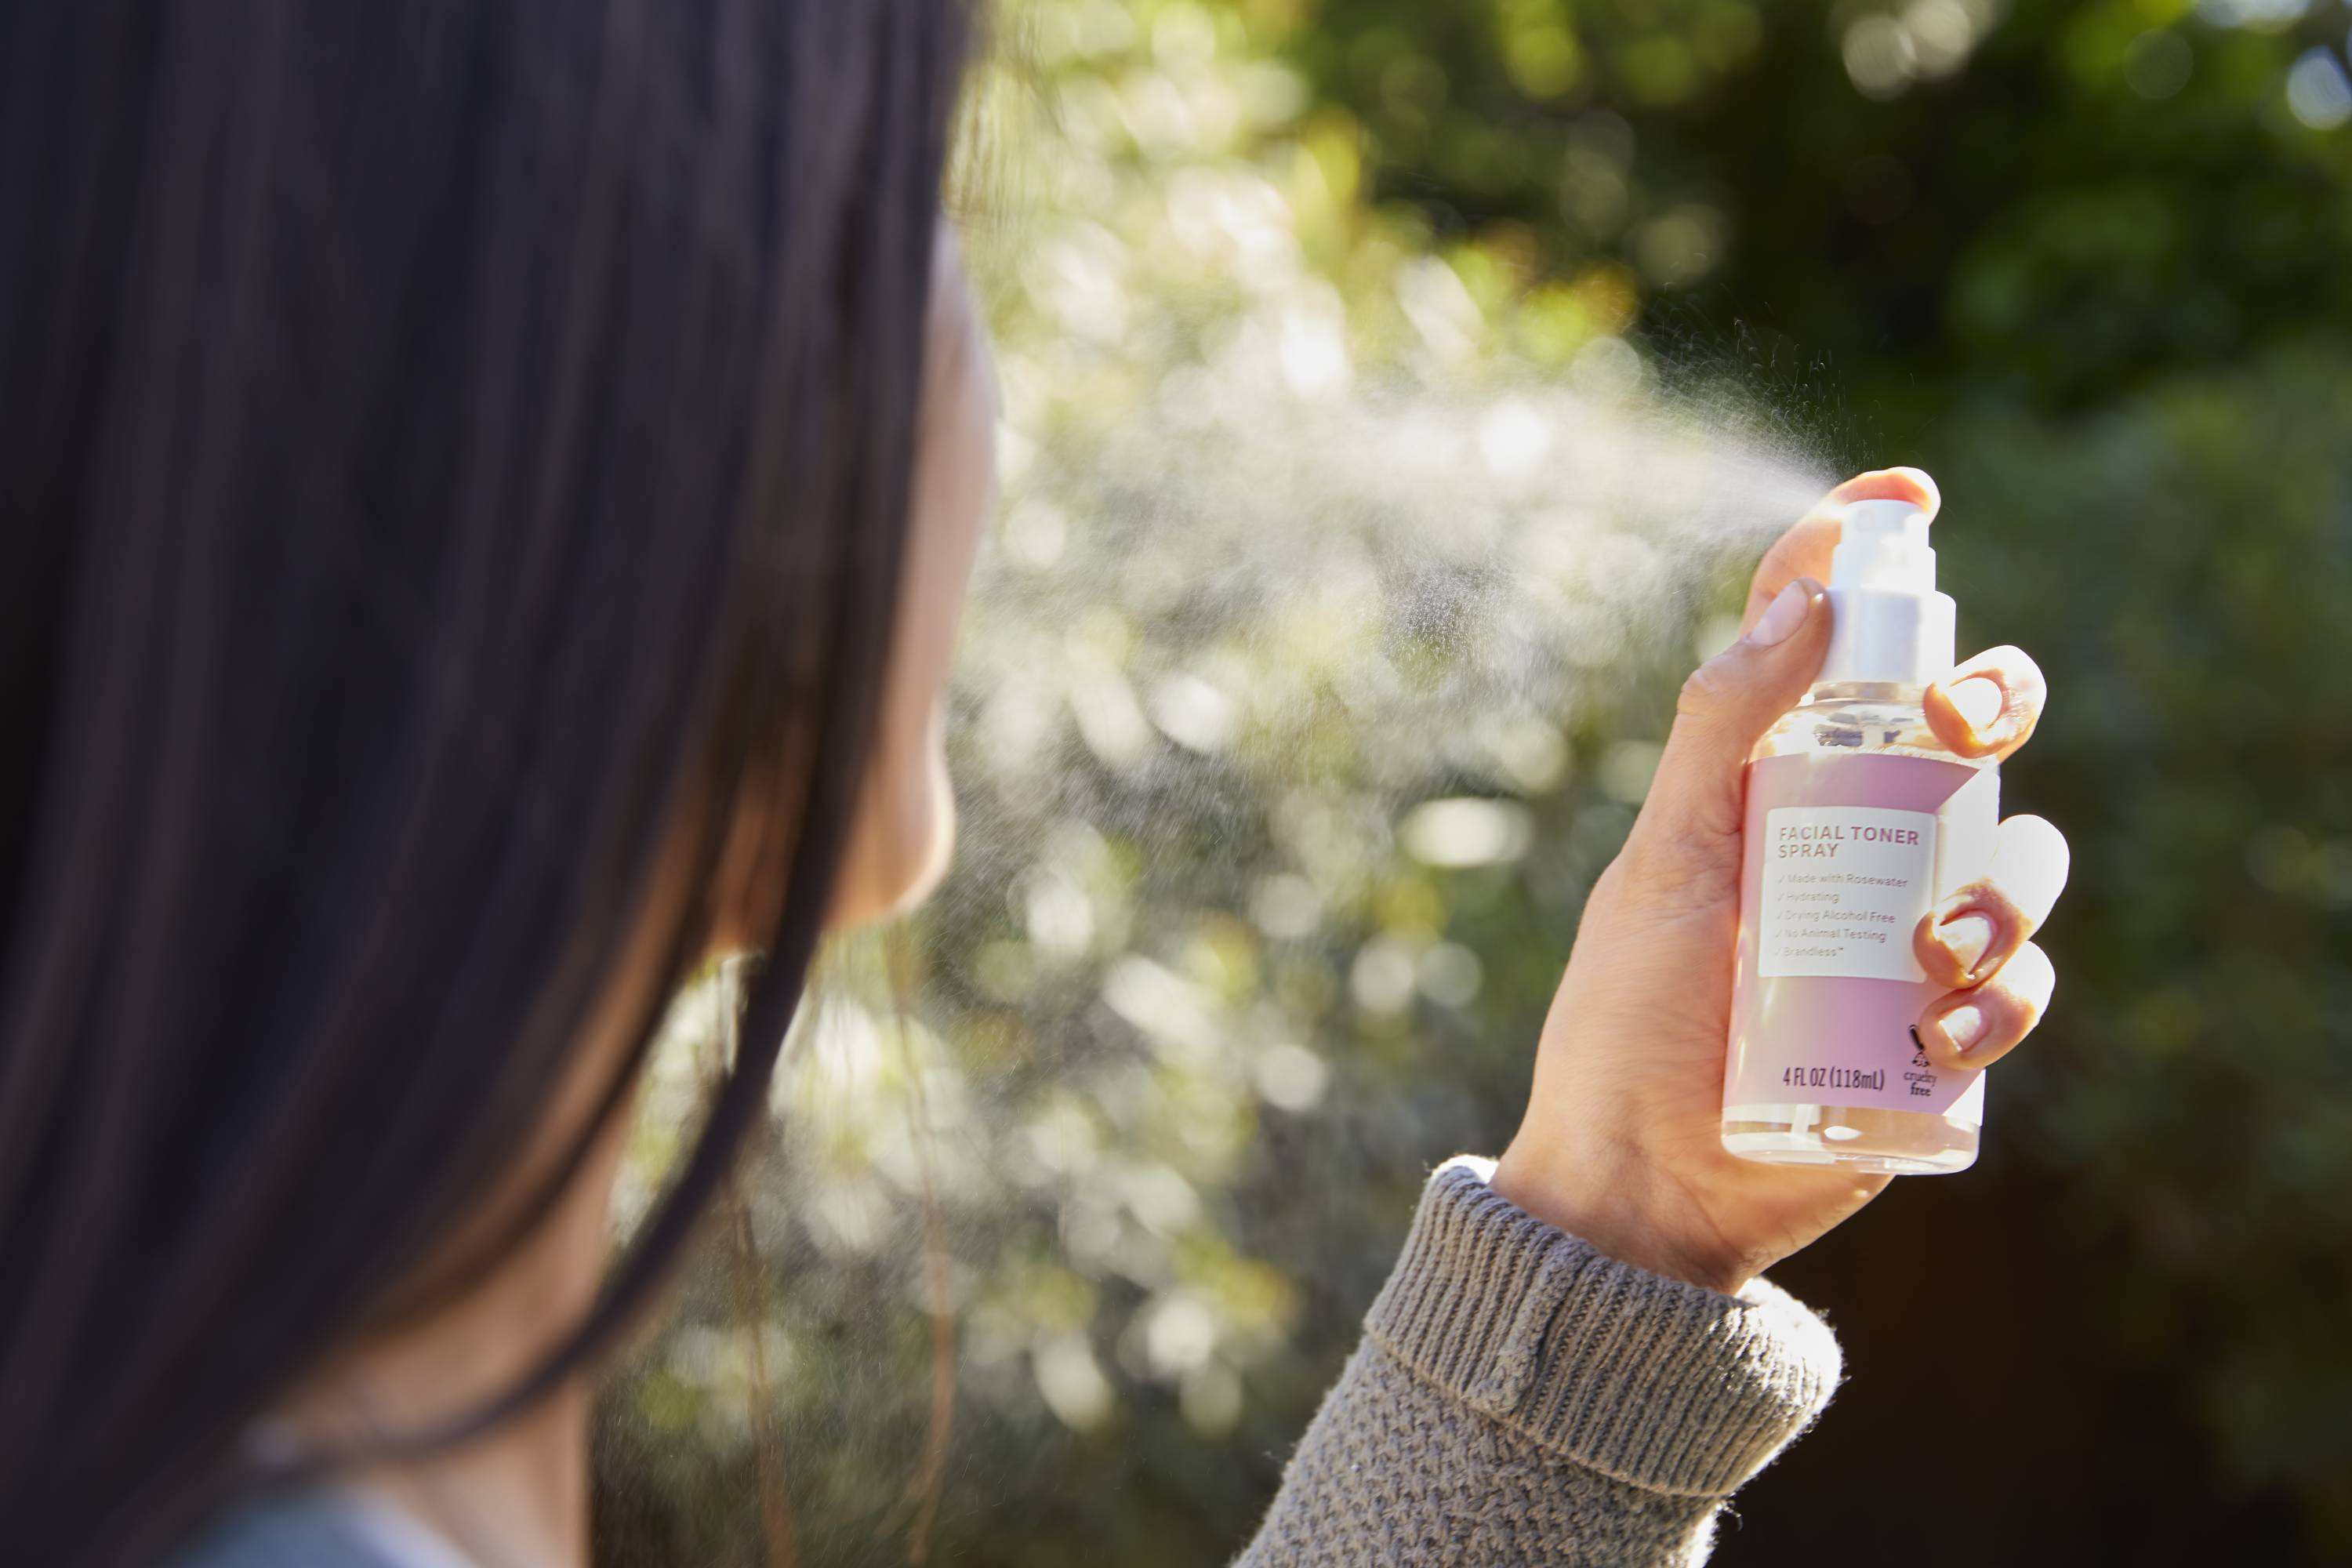 A woman holding the new Hydrating Rosewater Facial Toner Spray from D2C household goods company Brandless.